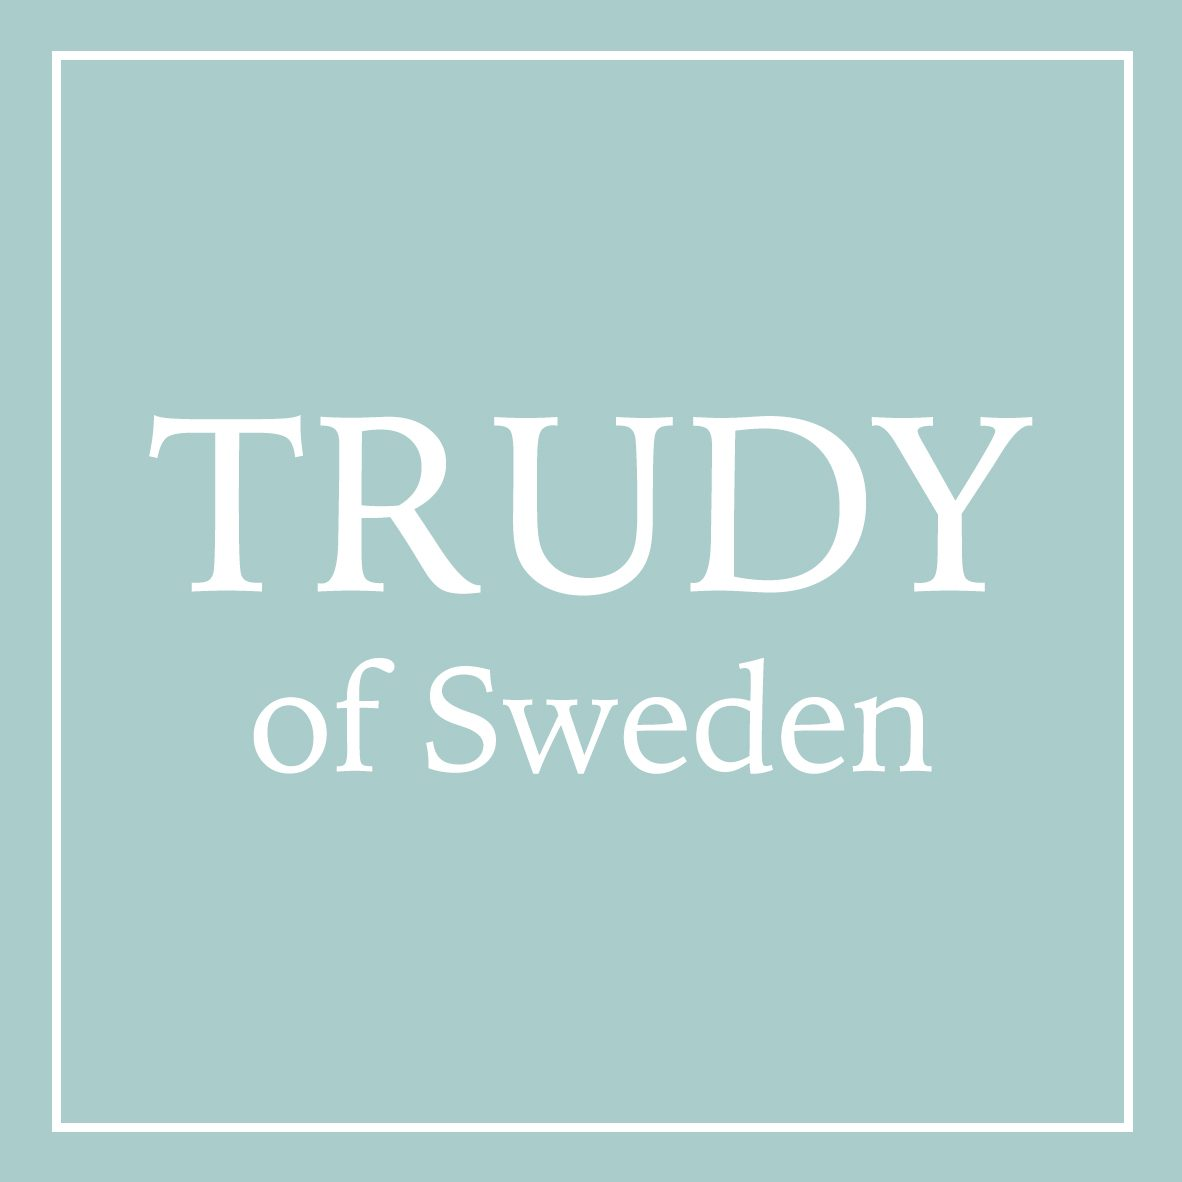 Trudy of Sweden